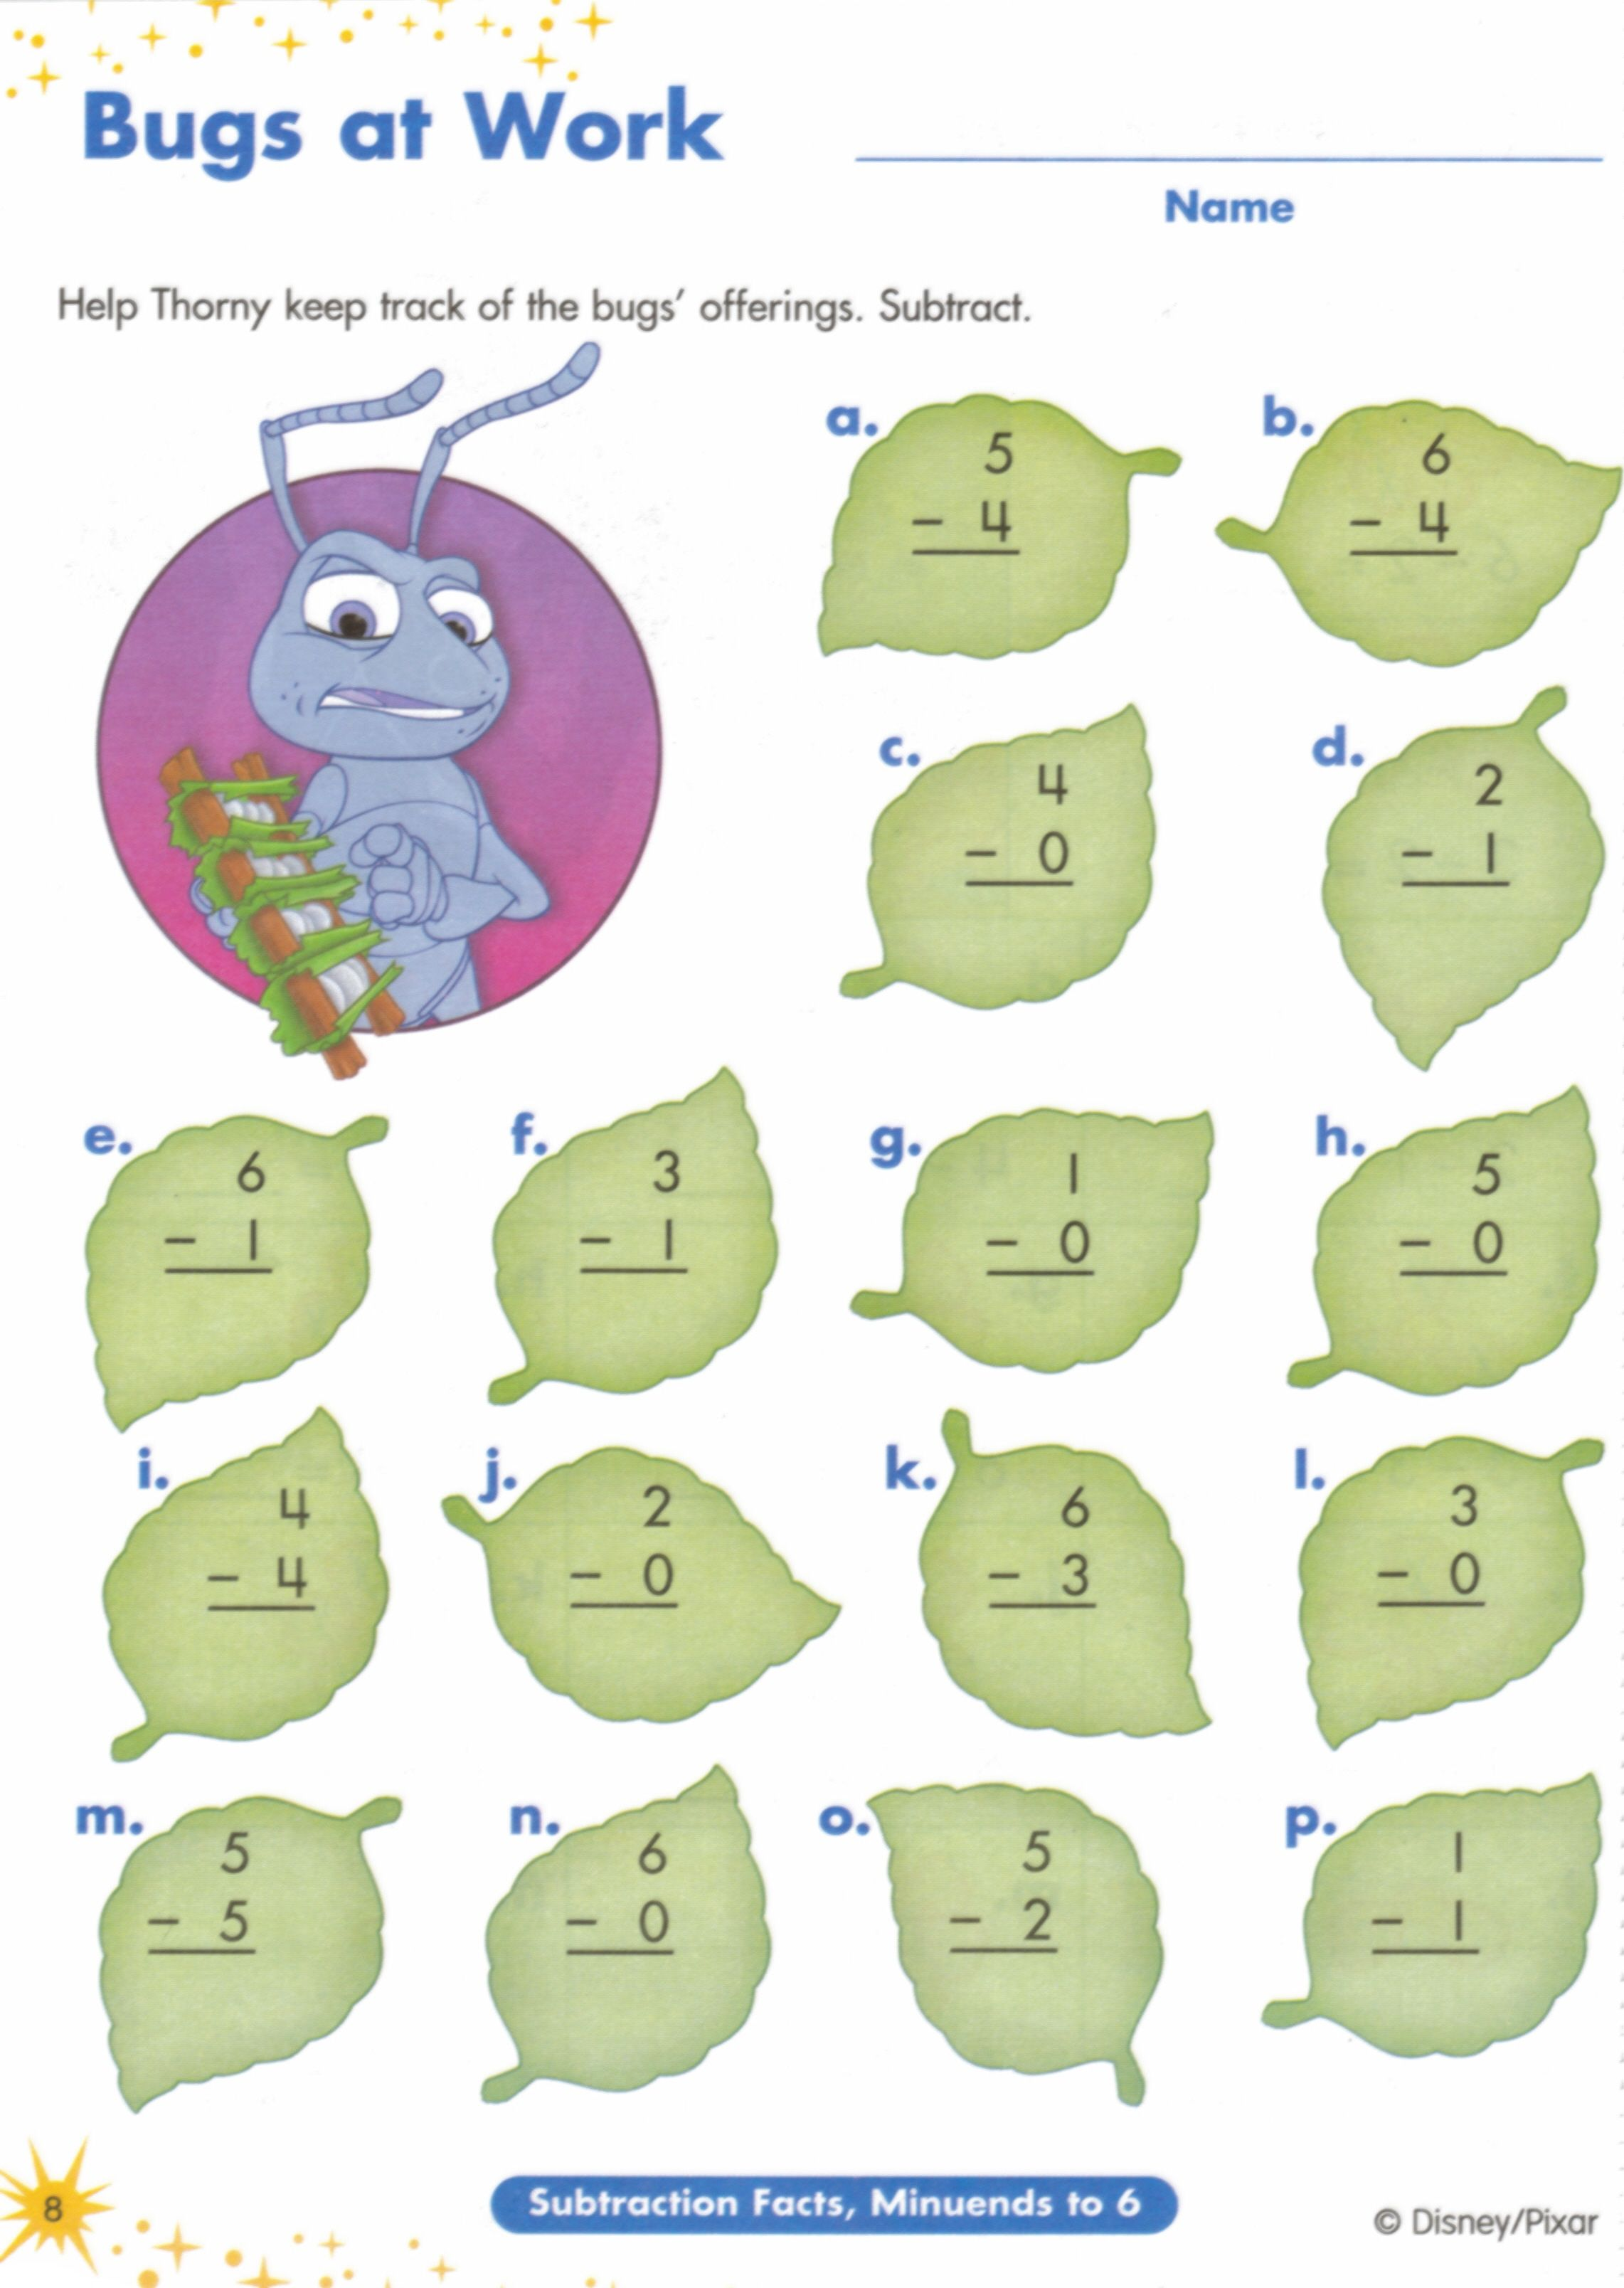 Proatmealus  Unusual  Images About Worksheets On Pinterest  Fun Facts For Kids  With Extraordinary  Images About Worksheets On Pinterest  Fun Facts For Kids Earth Day Worksheets And Jungles With Agreeable Adverbs Worksheet Th Grade Also Th Grade Math Problems Worksheets In Addition Introduction Worksheet For Students And Fha Streamline Calculation Worksheet As Well As Ph Phonics Worksheets Additionally Family Budget Worksheet Pdf From Pinterestcom With Proatmealus  Extraordinary  Images About Worksheets On Pinterest  Fun Facts For Kids  With Agreeable  Images About Worksheets On Pinterest  Fun Facts For Kids Earth Day Worksheets And Jungles And Unusual Adverbs Worksheet Th Grade Also Th Grade Math Problems Worksheets In Addition Introduction Worksheet For Students From Pinterestcom